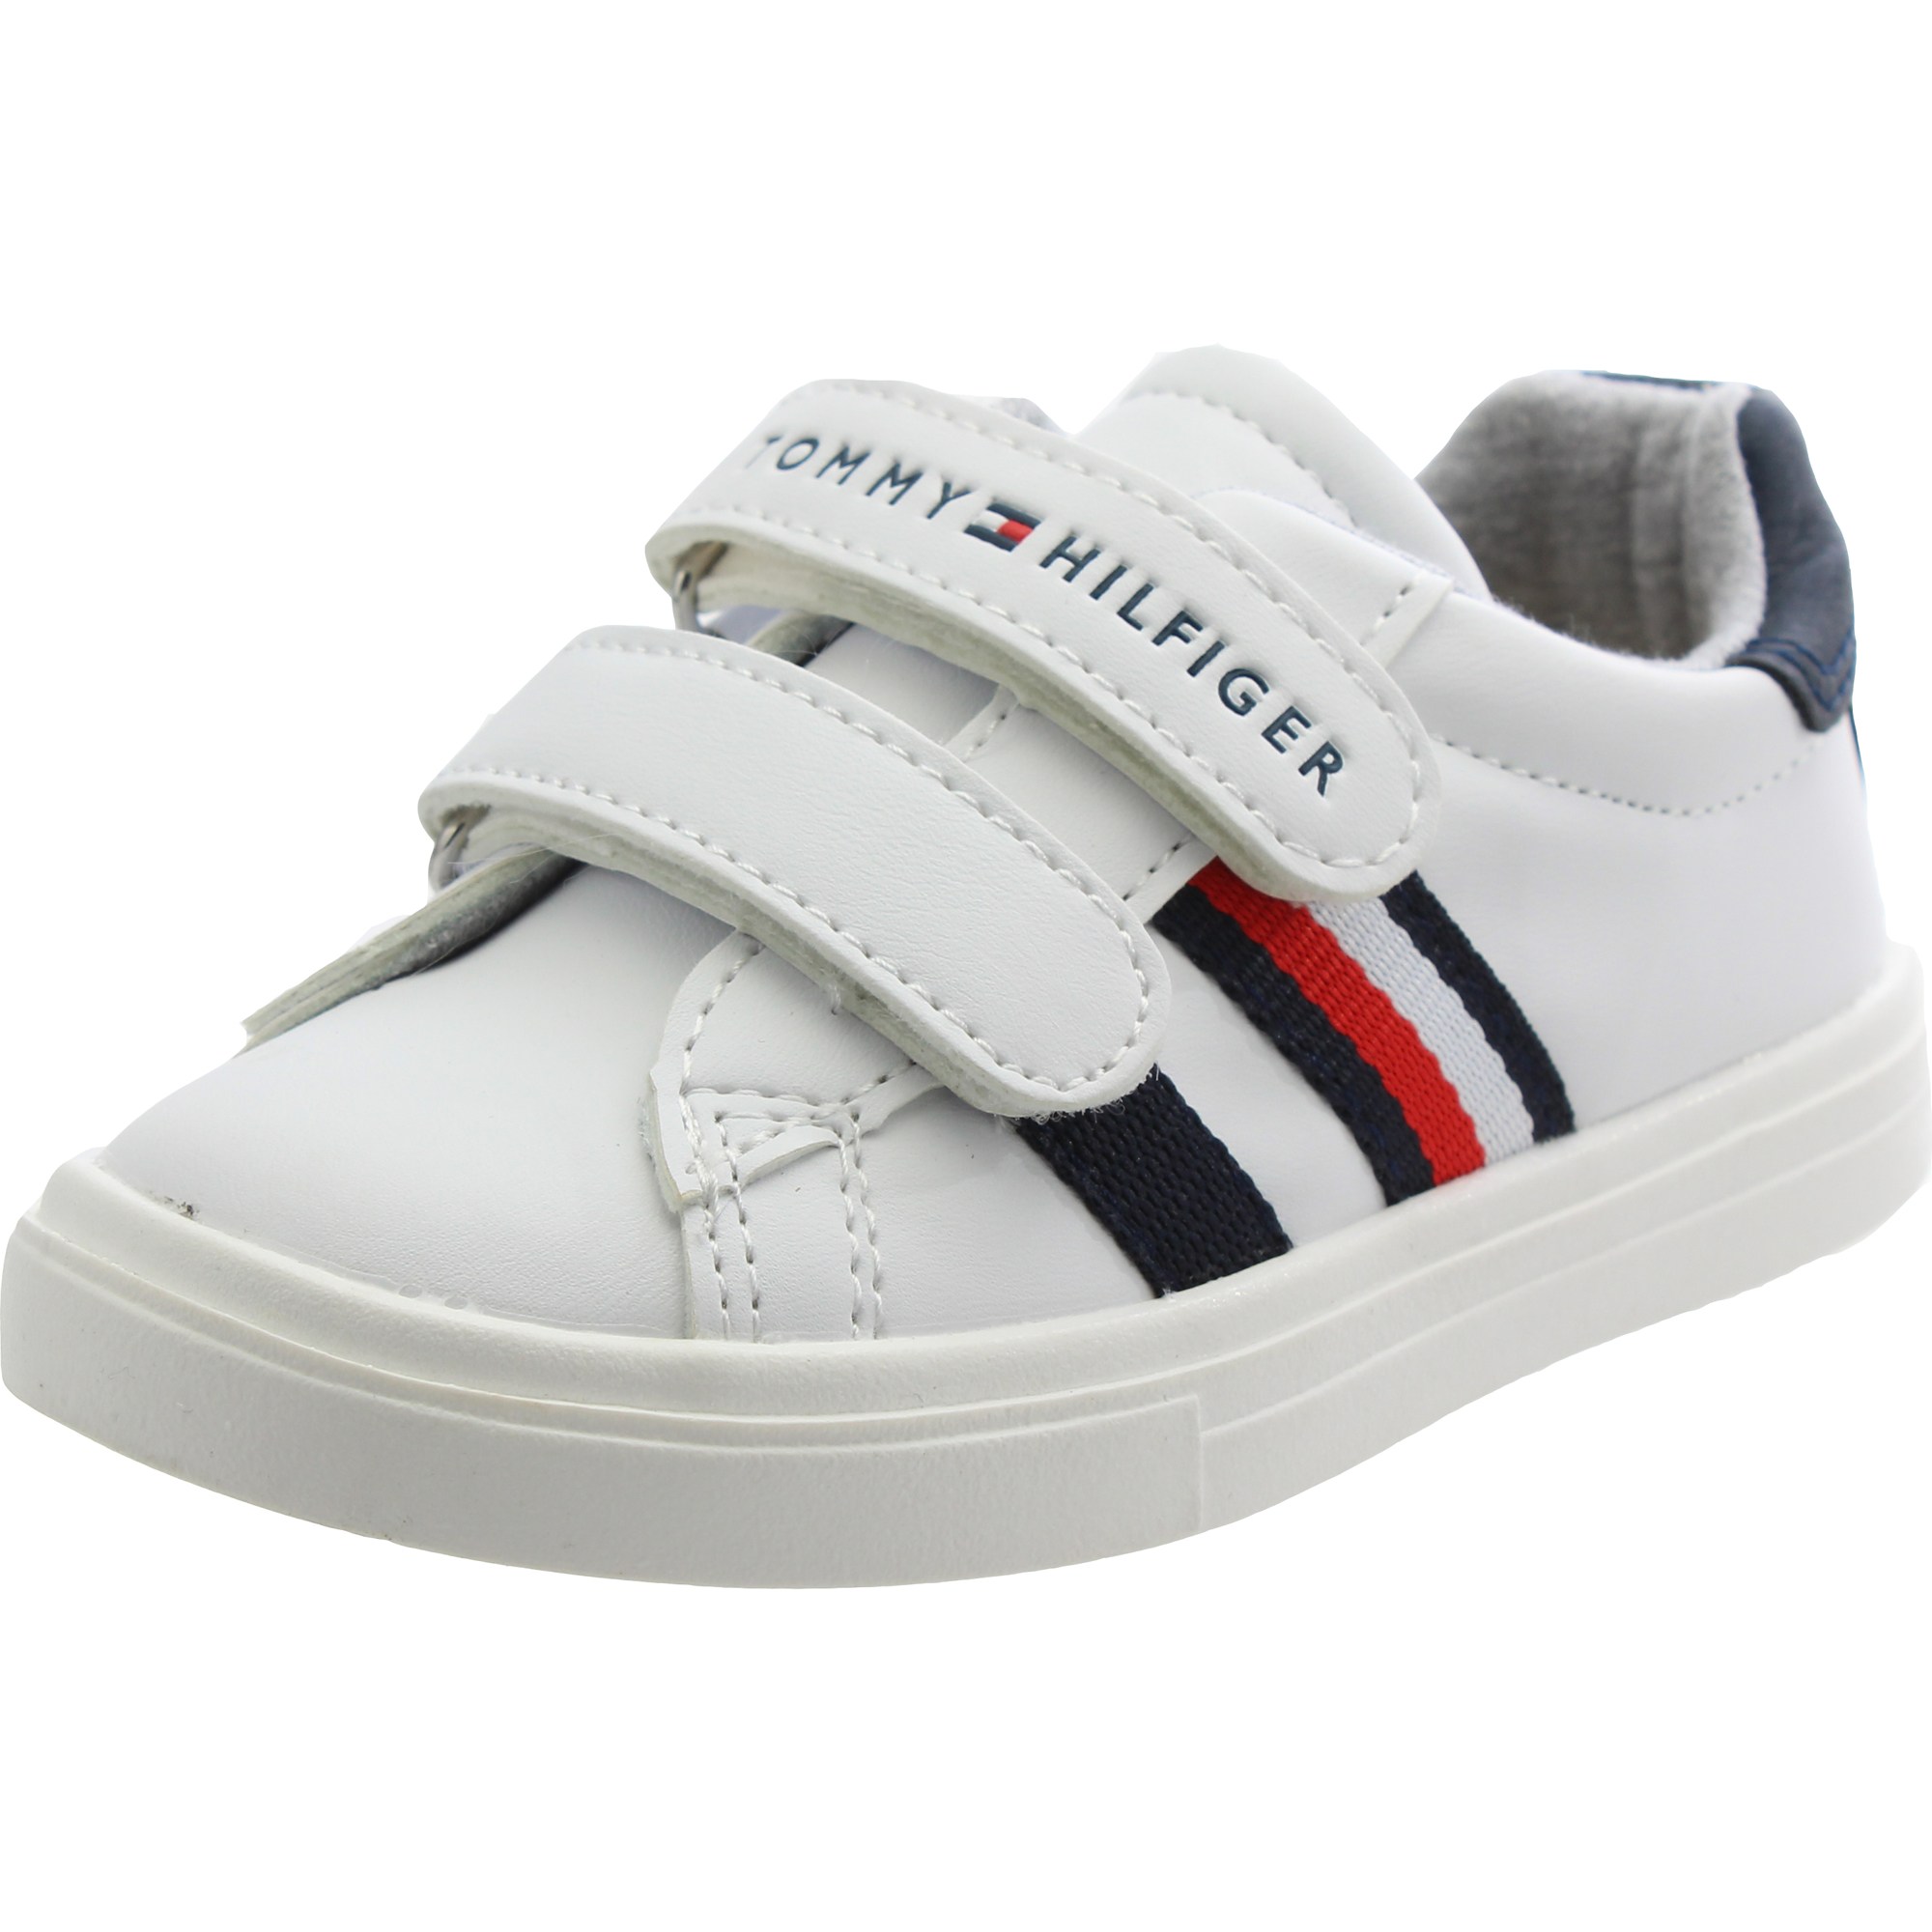 online shop shopping on feet at Tommy Hilfiger Trainer White Leather - Trainers Shoes - Awesome Shoes